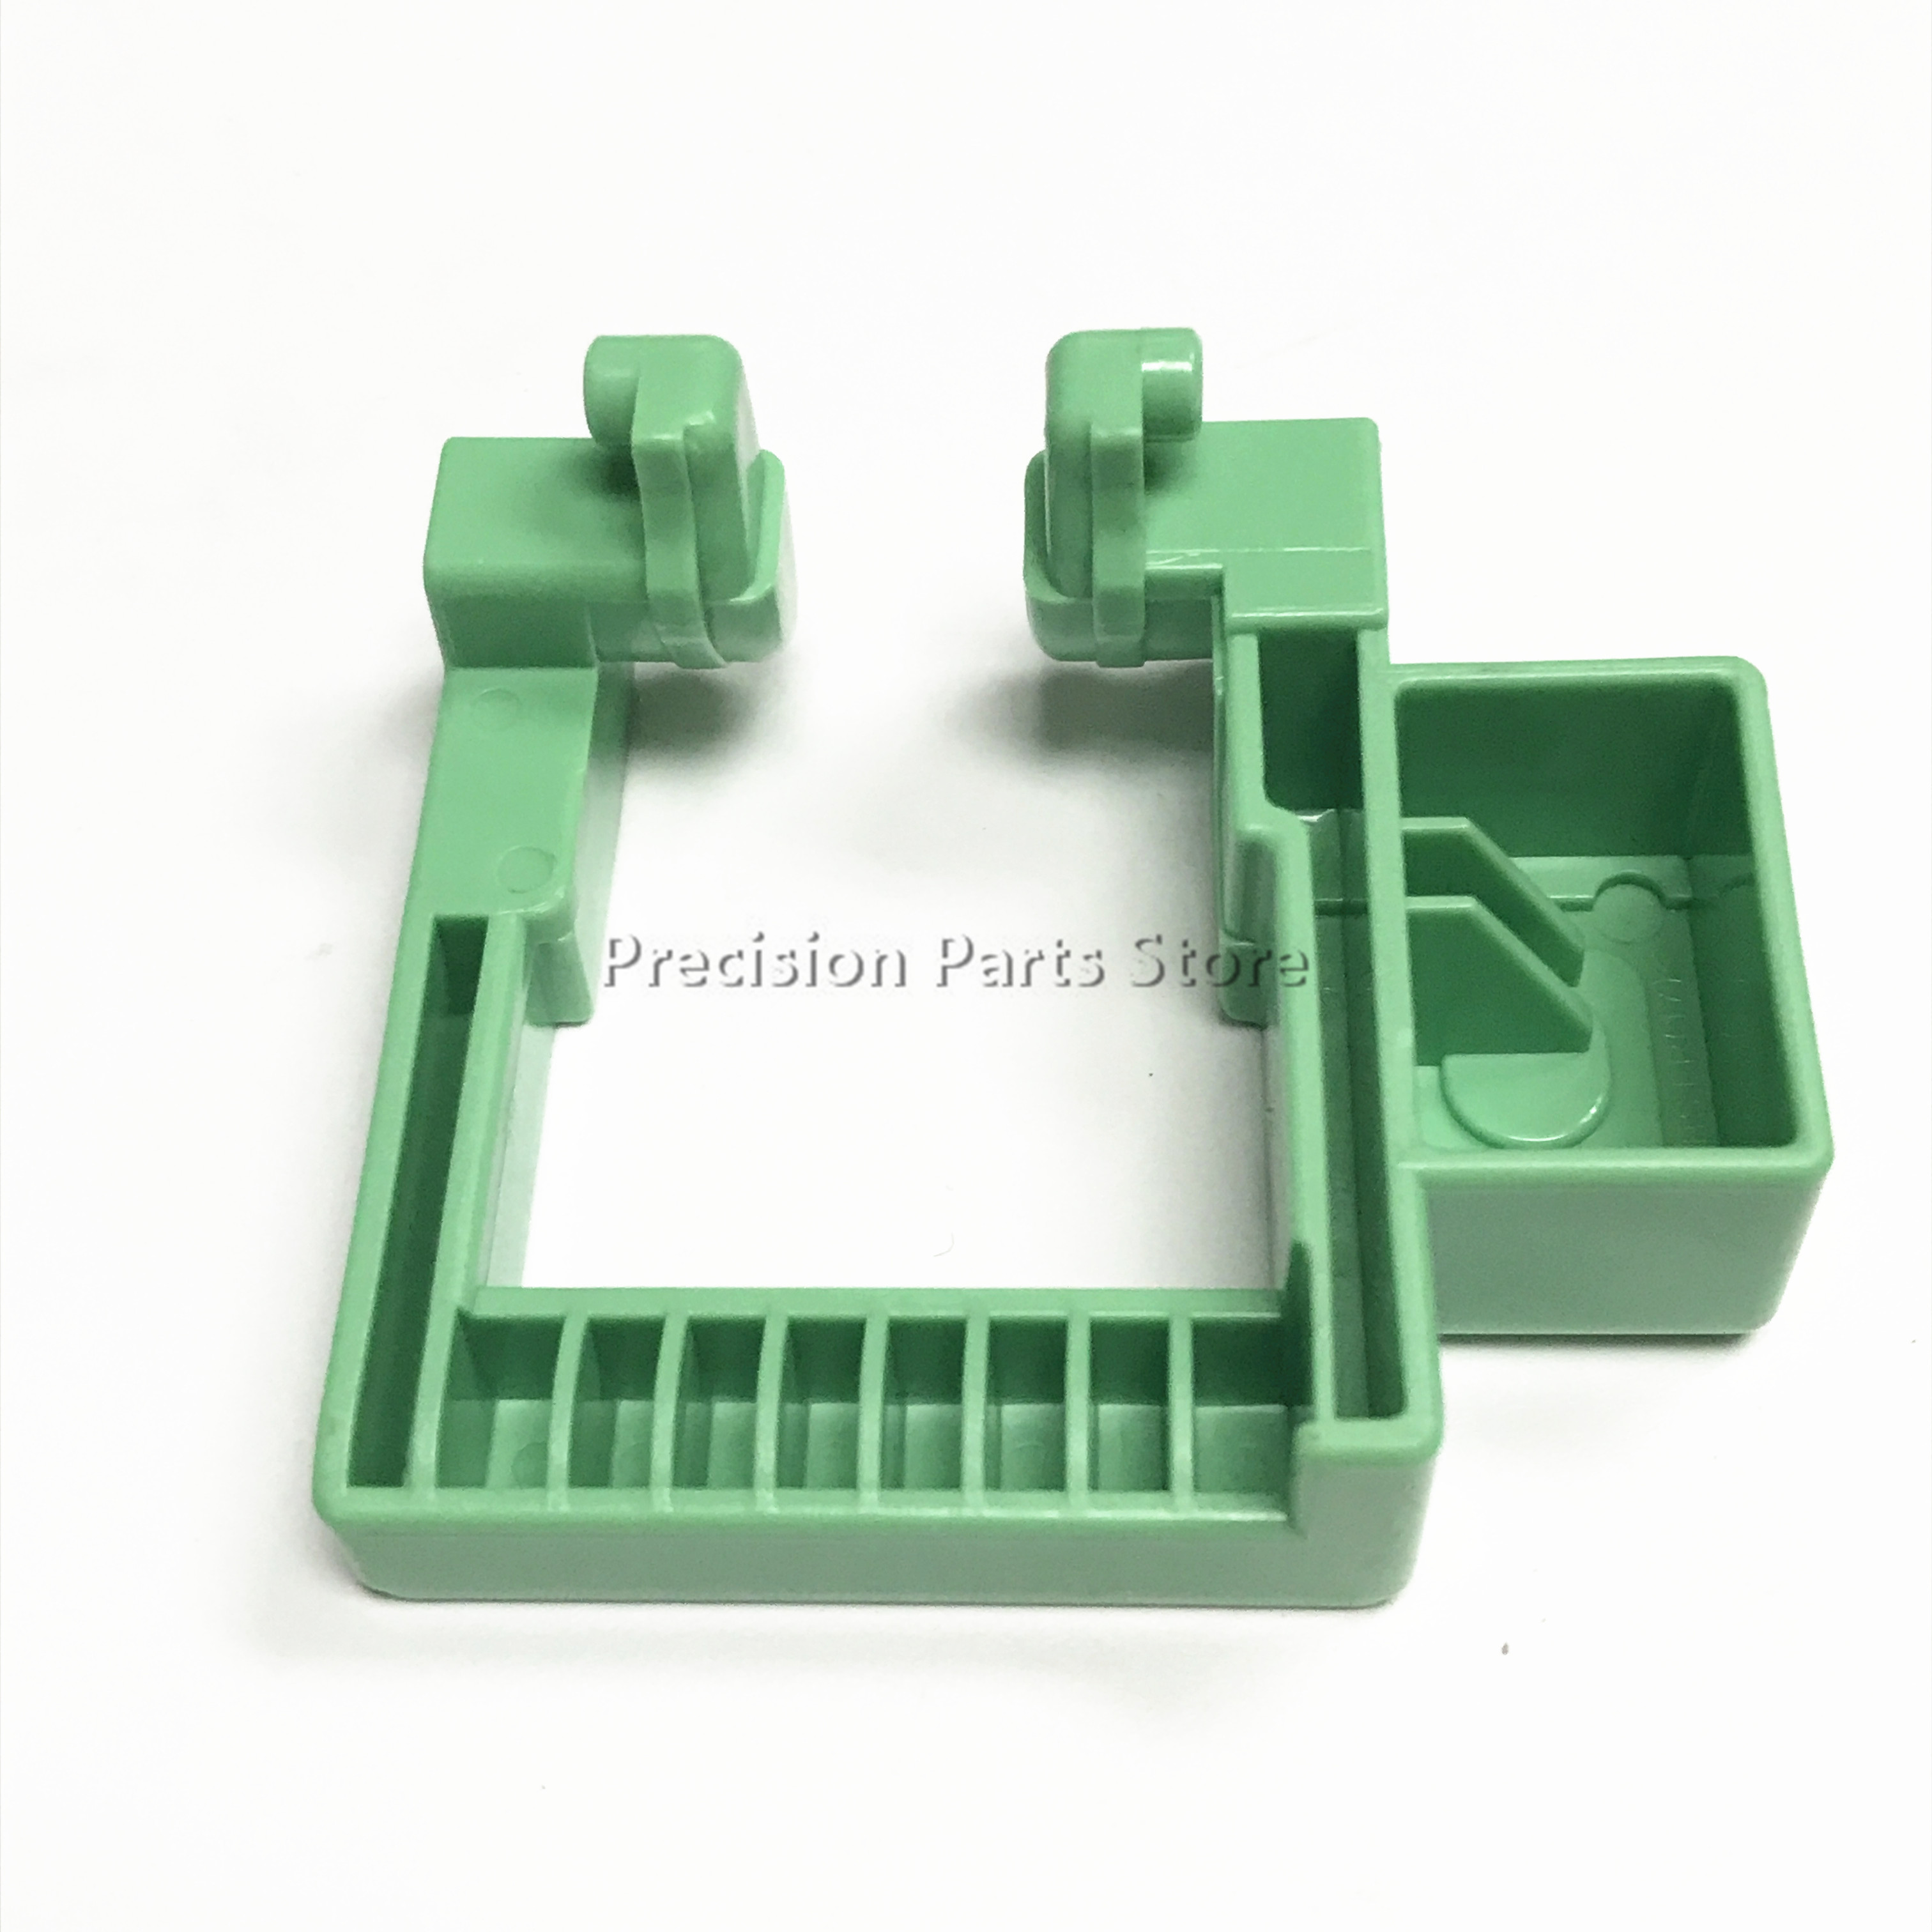 B0443461 B044-3461 Compatible new handle For Ricoh AF 1515 1013 175 175L Green Handle on toner supply-1